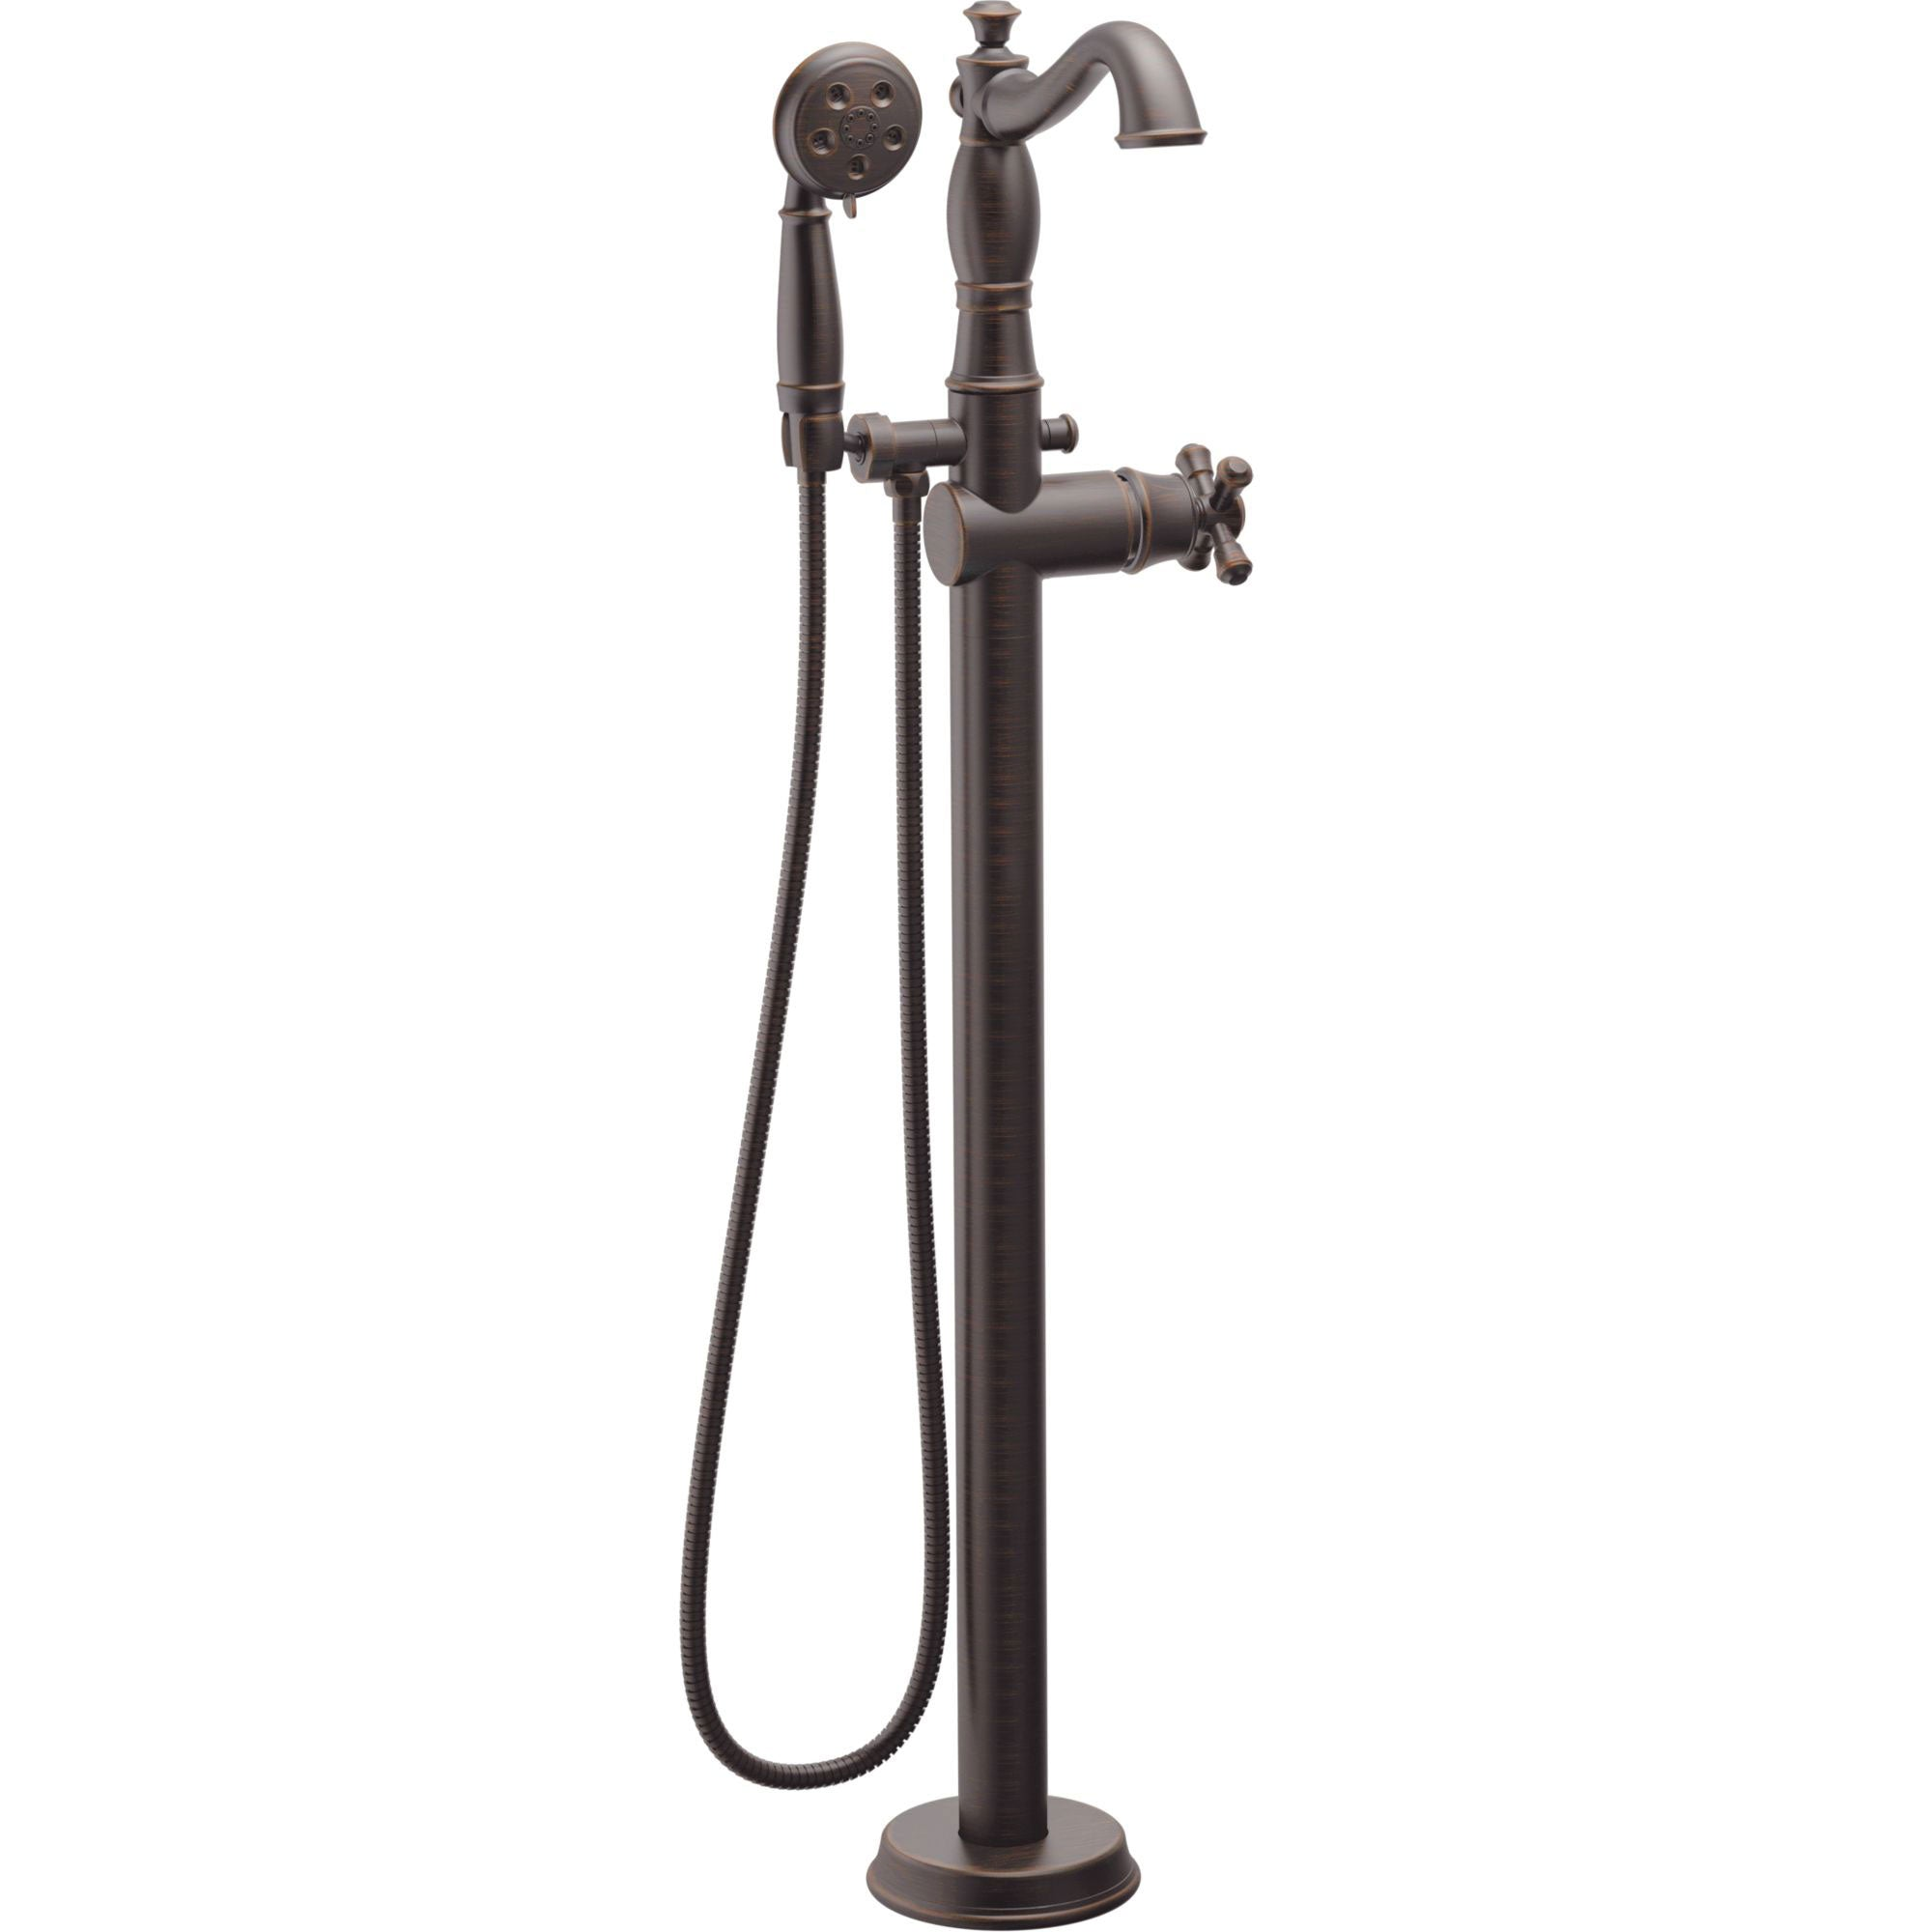 Delta Traditional Venetian Bronze Floor Mount Tub Filler Faucet with Hand Shower Spray INCLUDES Valve and Metal Cross Handle D1059V